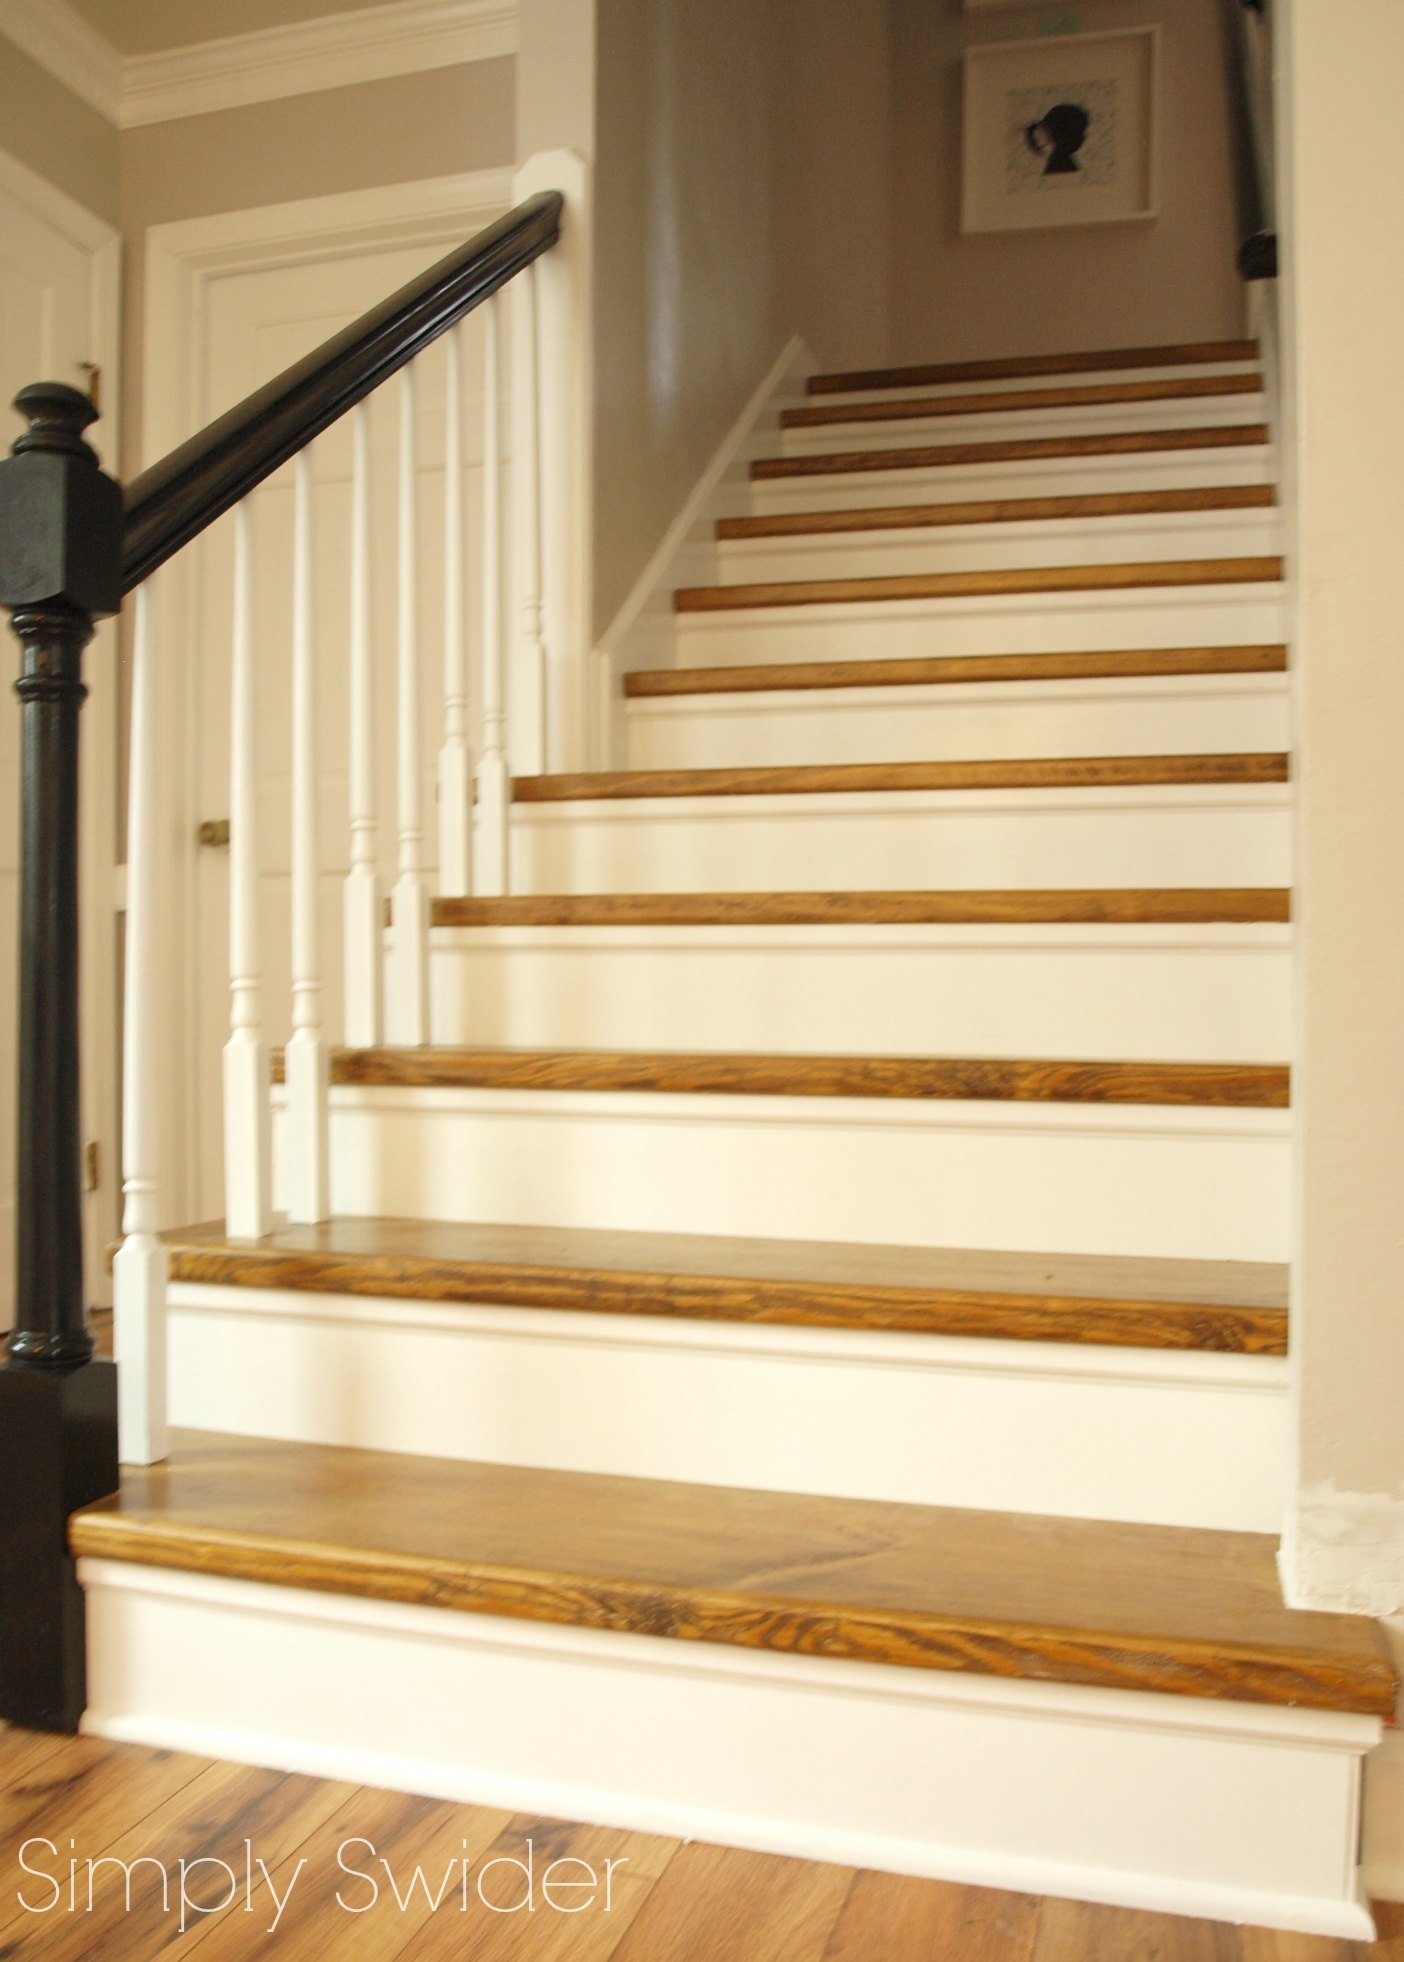 Carpet To Wood Stair Makeover Reveal Simply Swider Pertaining To Carpet For Wood Stairs (#5 of 20)